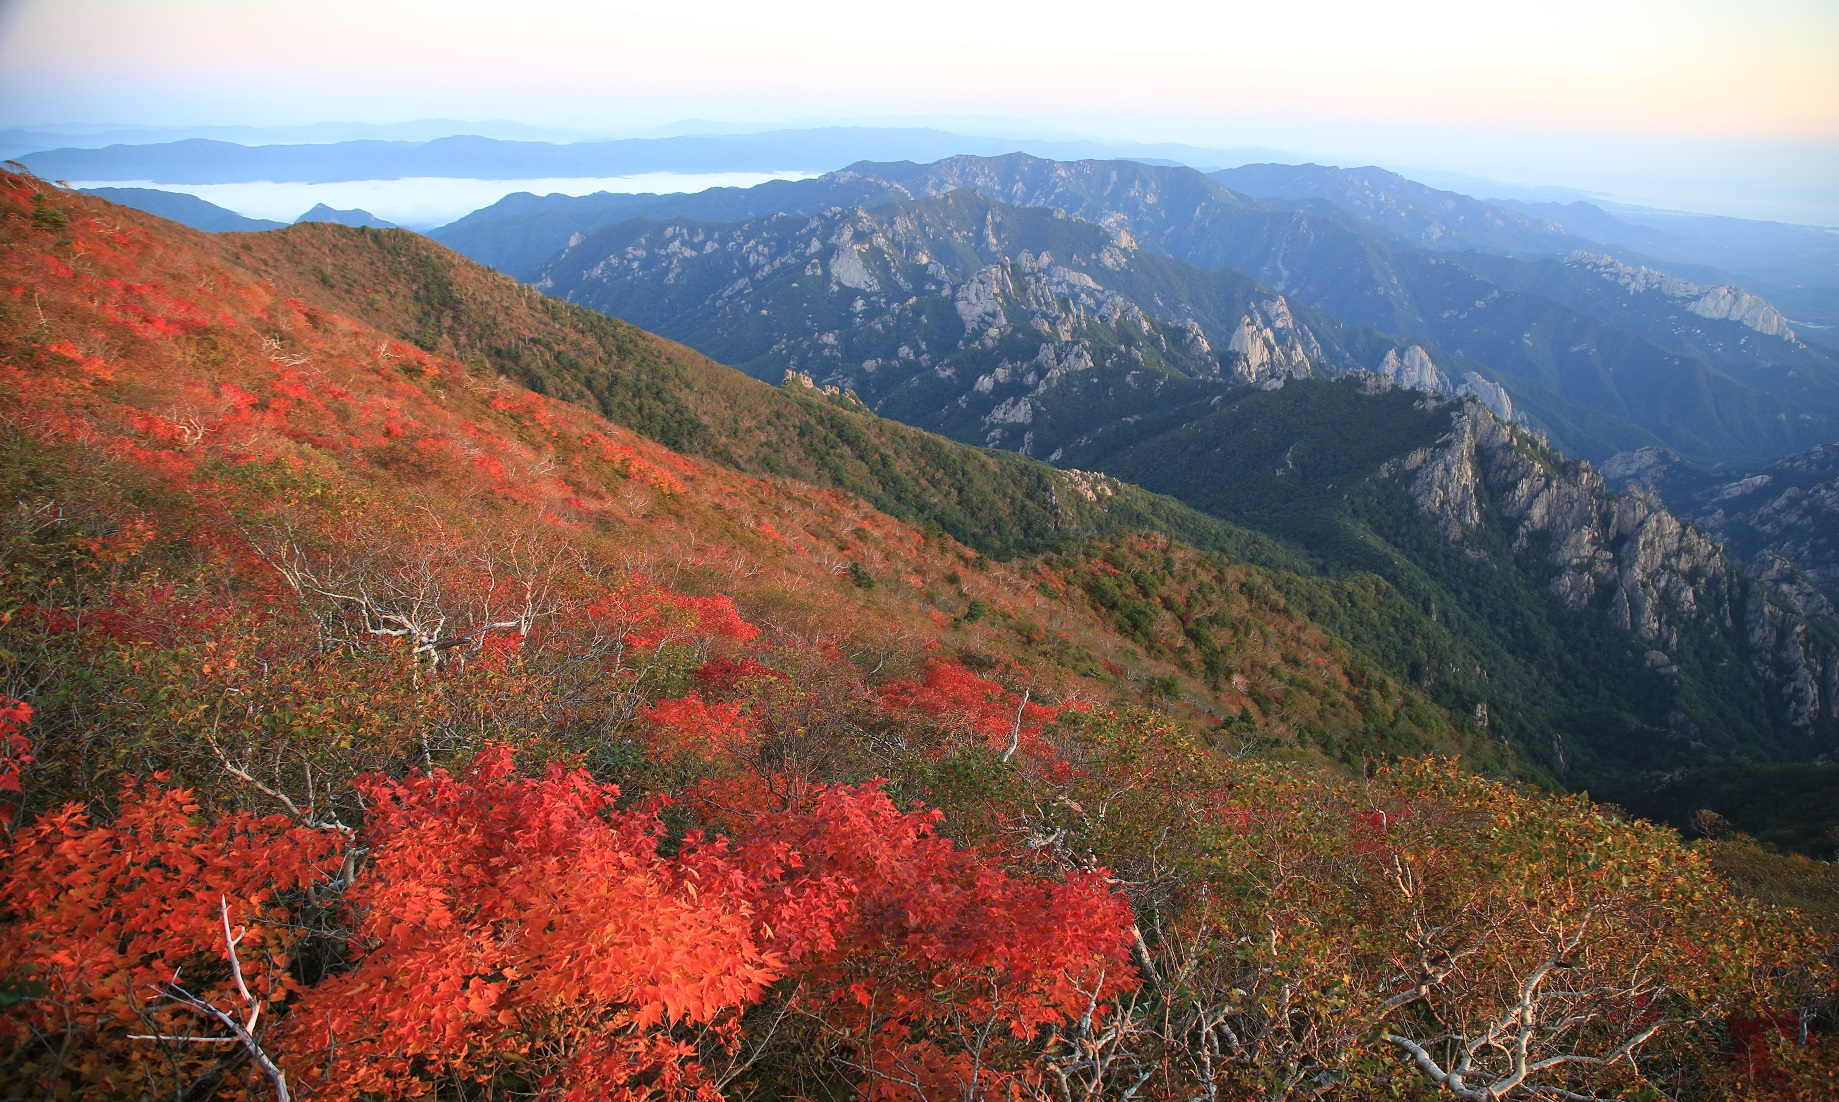 Autumn hues on Mount Seorak